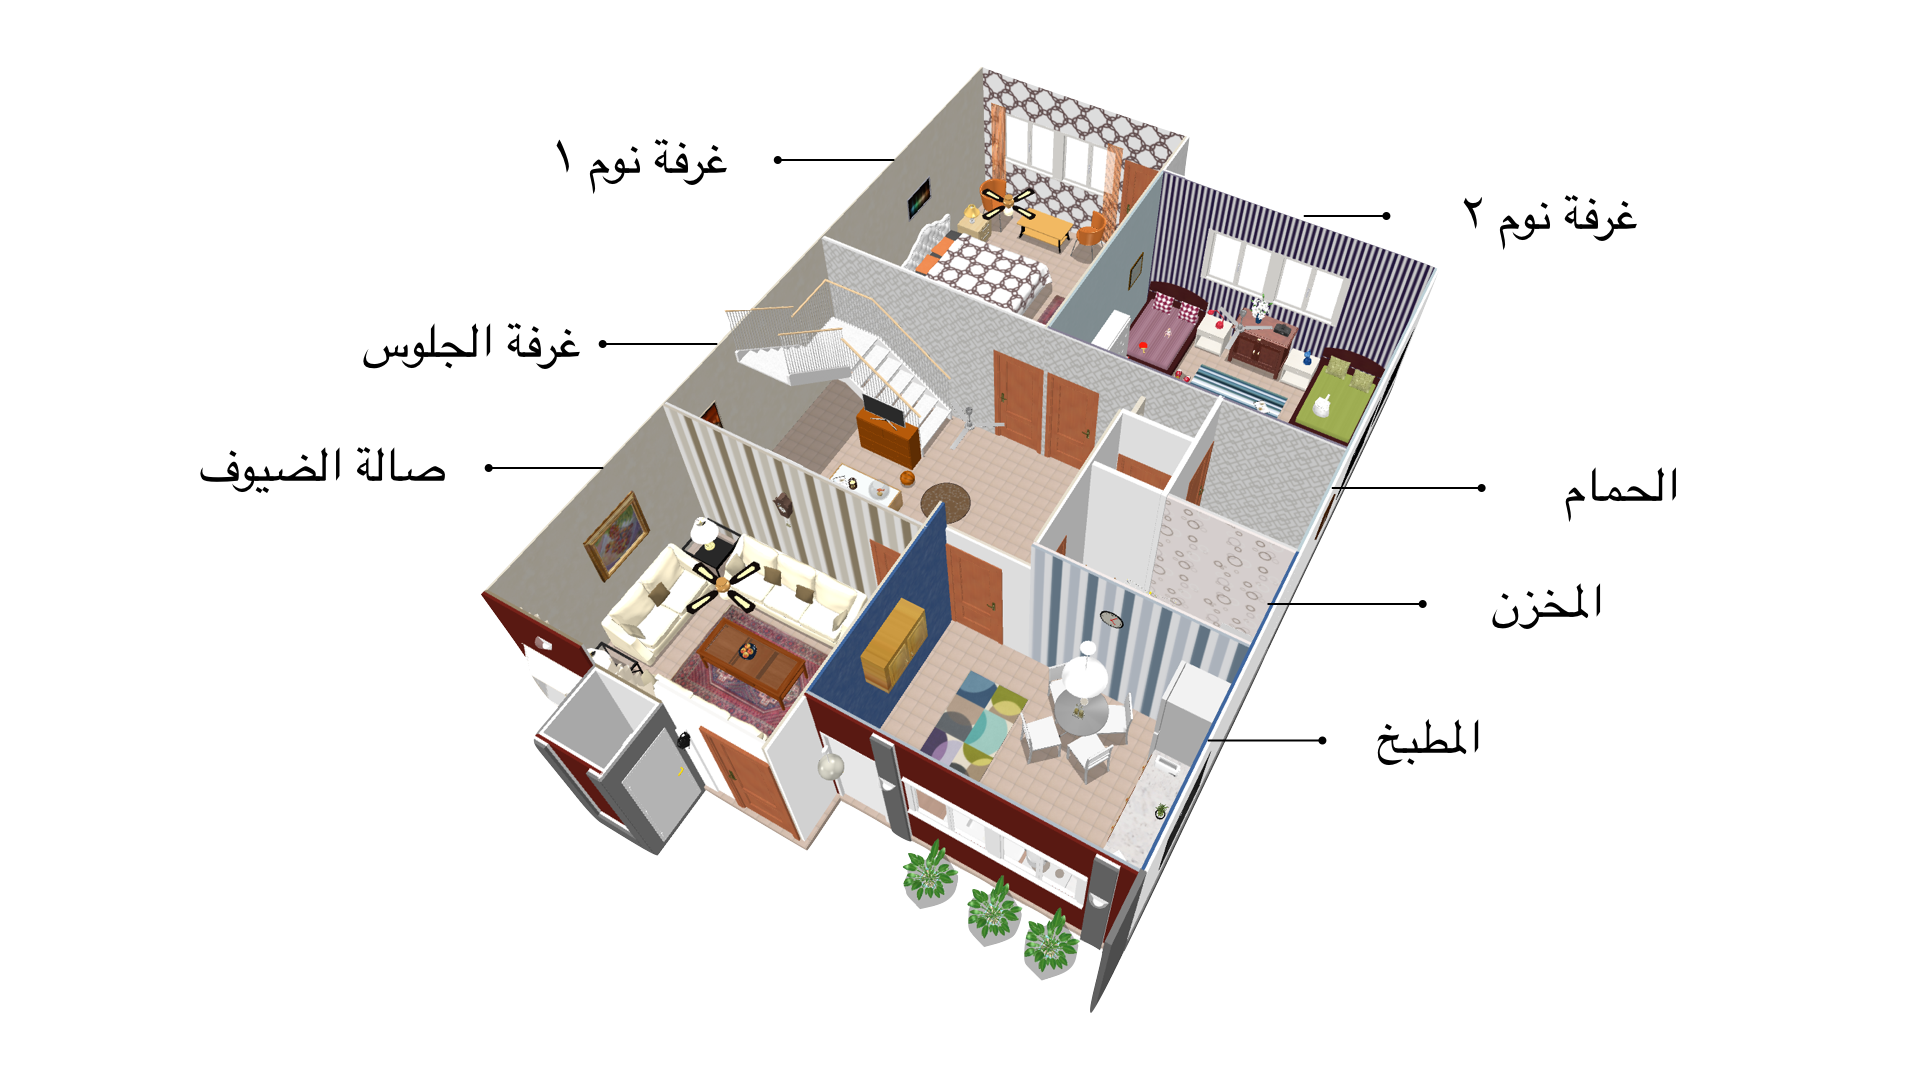 100 sqm 3d labeled arb.png